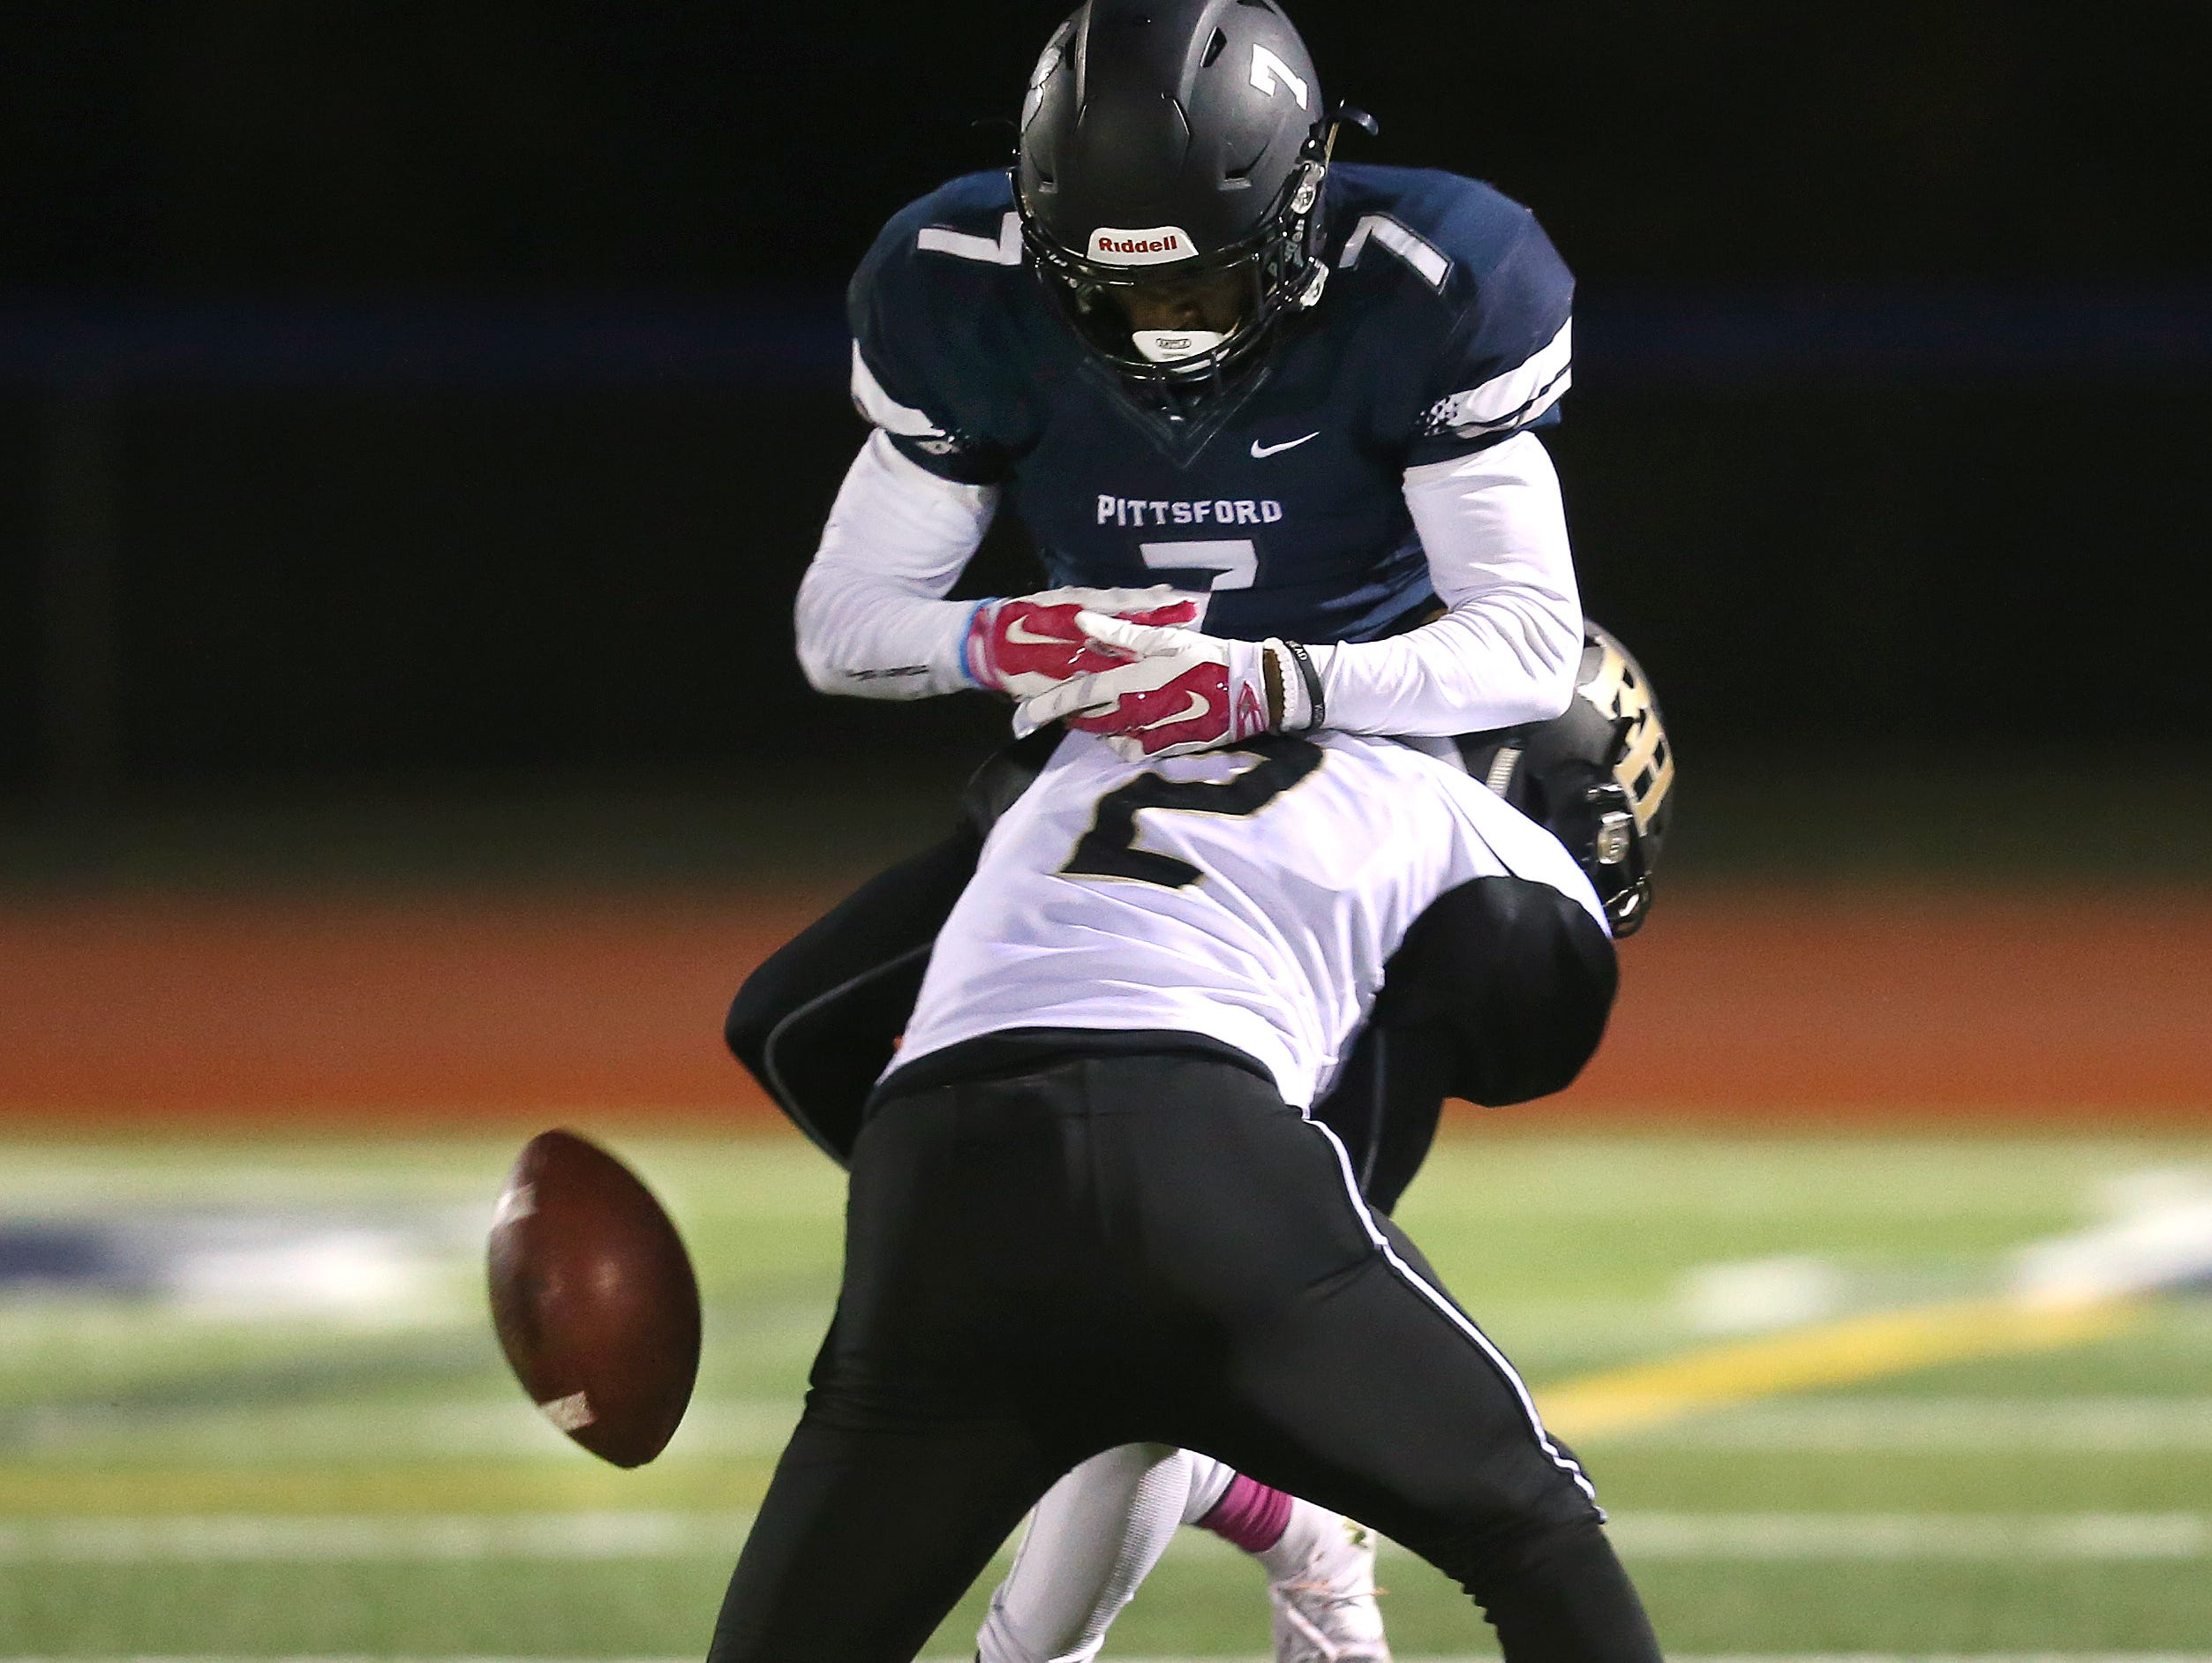 Pittsford's Isaiah Brown (7) has the ball knocked by Rush-Henrietta's Reggie Robinson (2) before securing the catch.